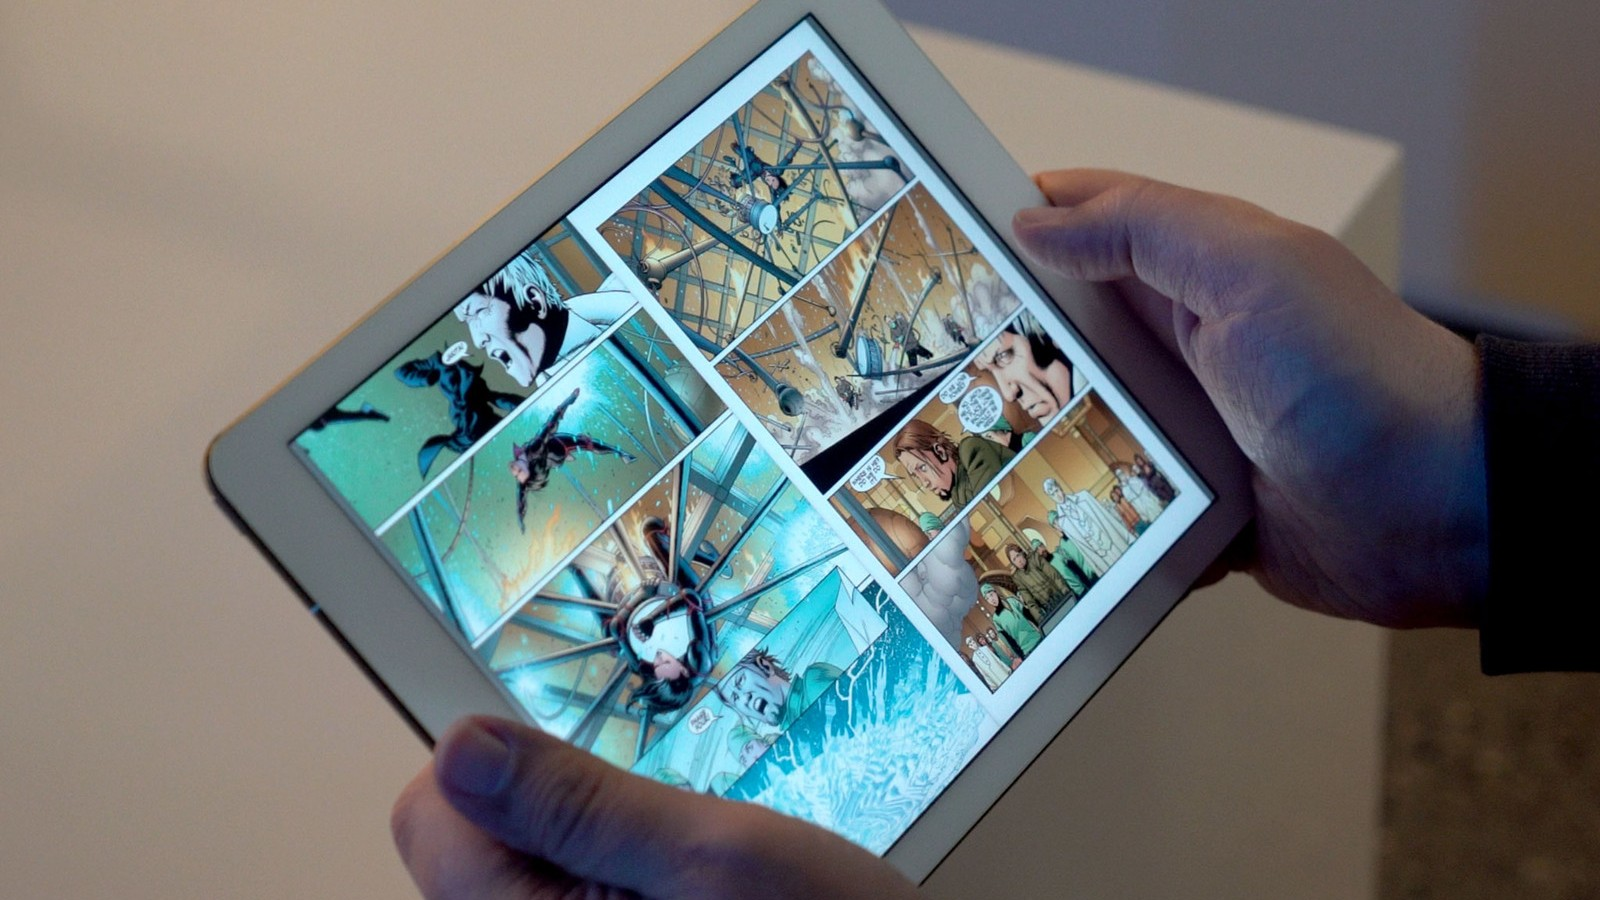 How good is the display of the new iPad Pro?